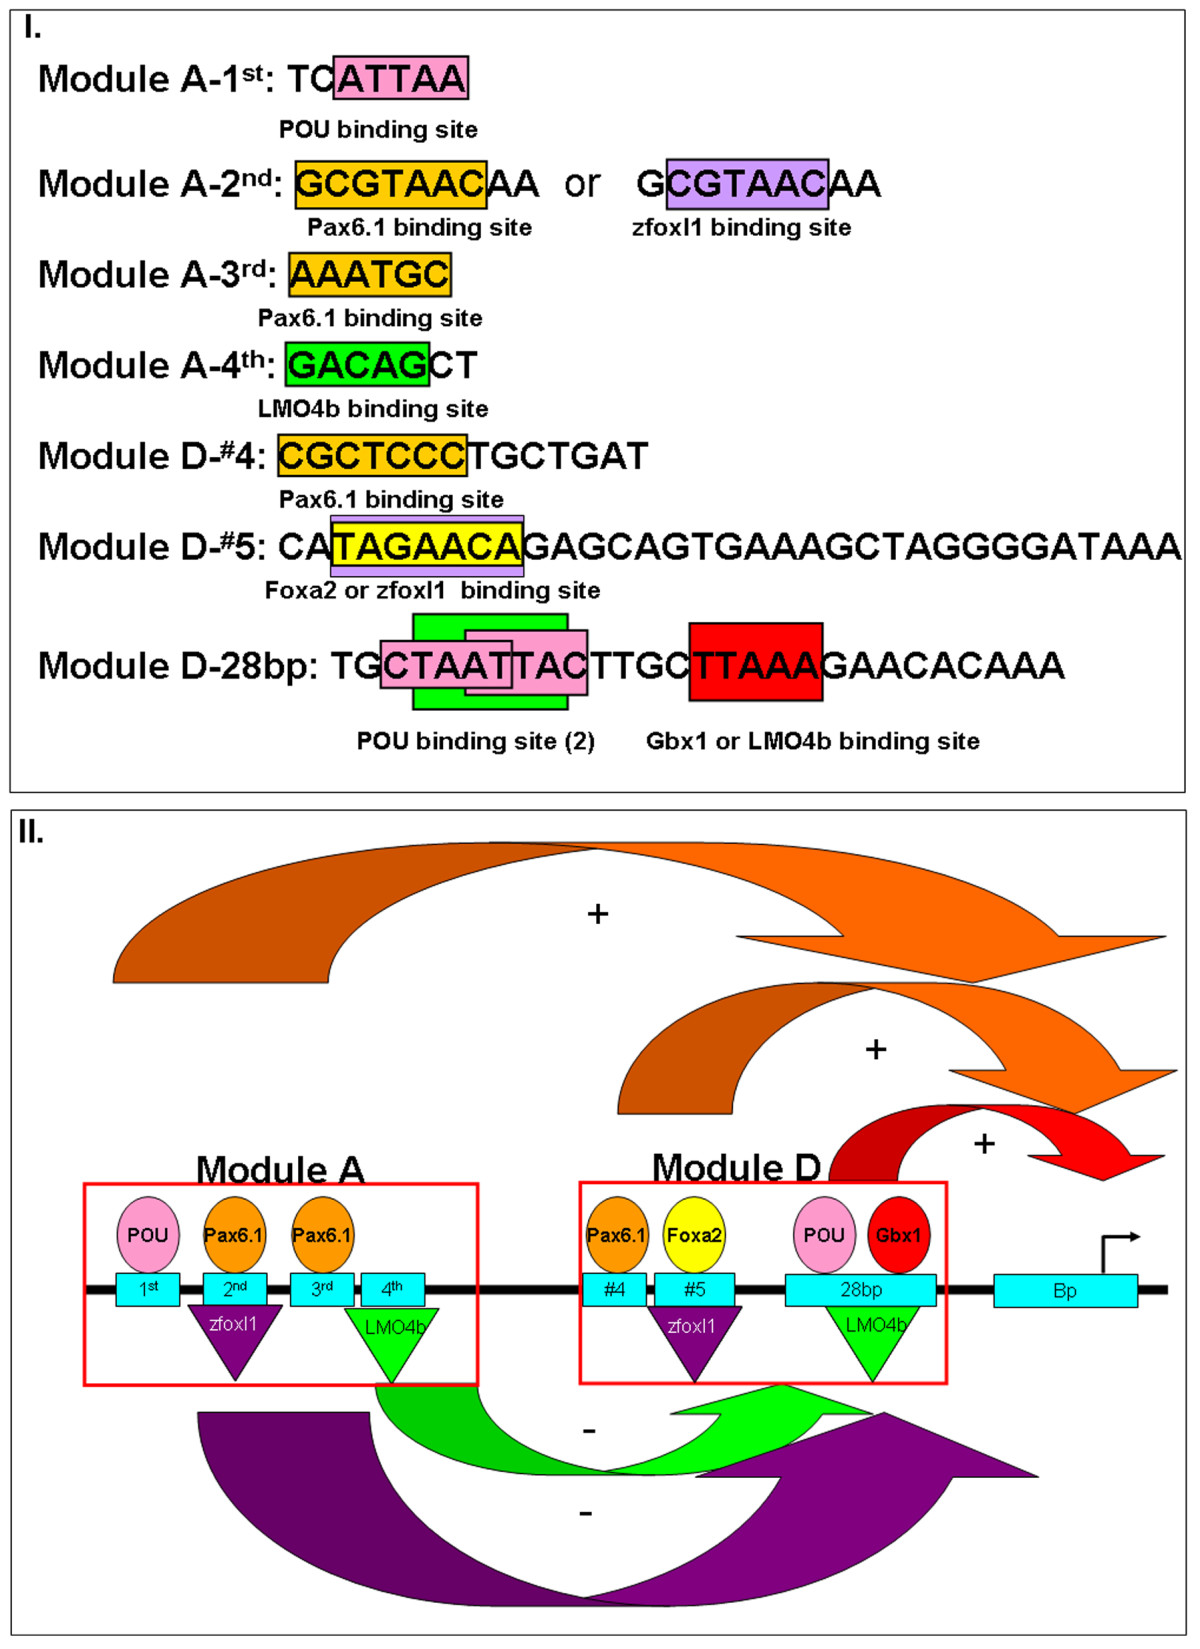 http://static-content.springer.com/image/art%3A10.1186%2F1471-213X-10-35/MediaObjects/12861_2009_Article_512_Fig9_HTML.jpg